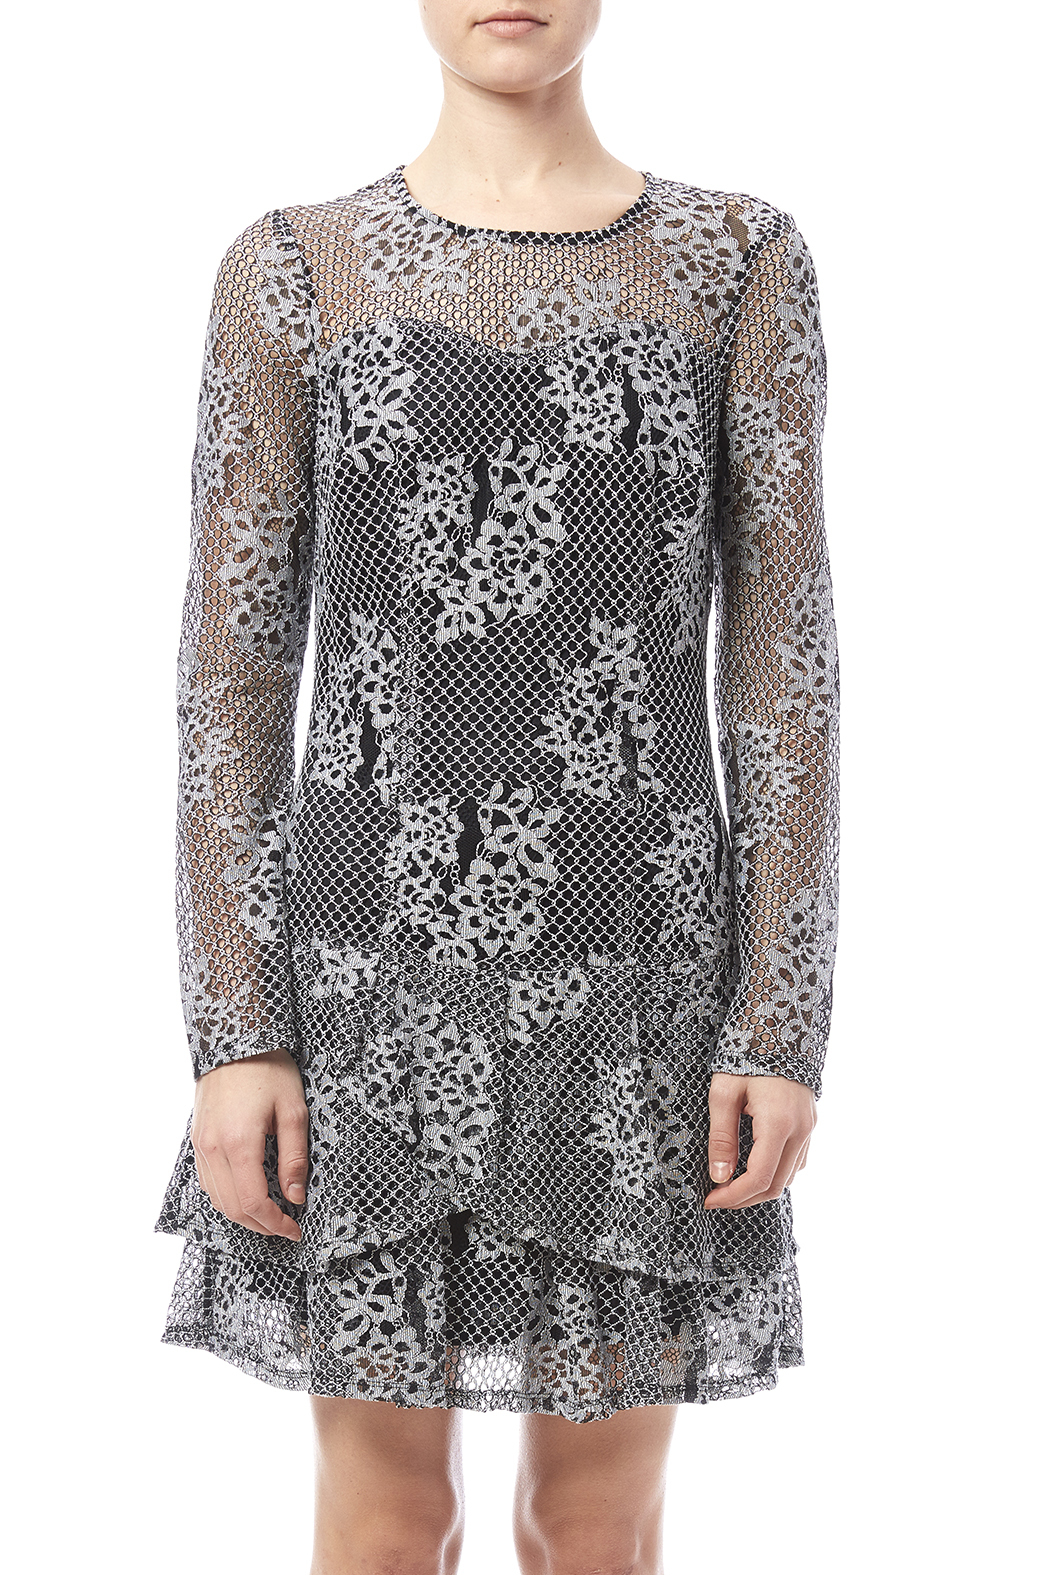 Kut from the Kloth Lace Flare Dress - Side Cropped Image